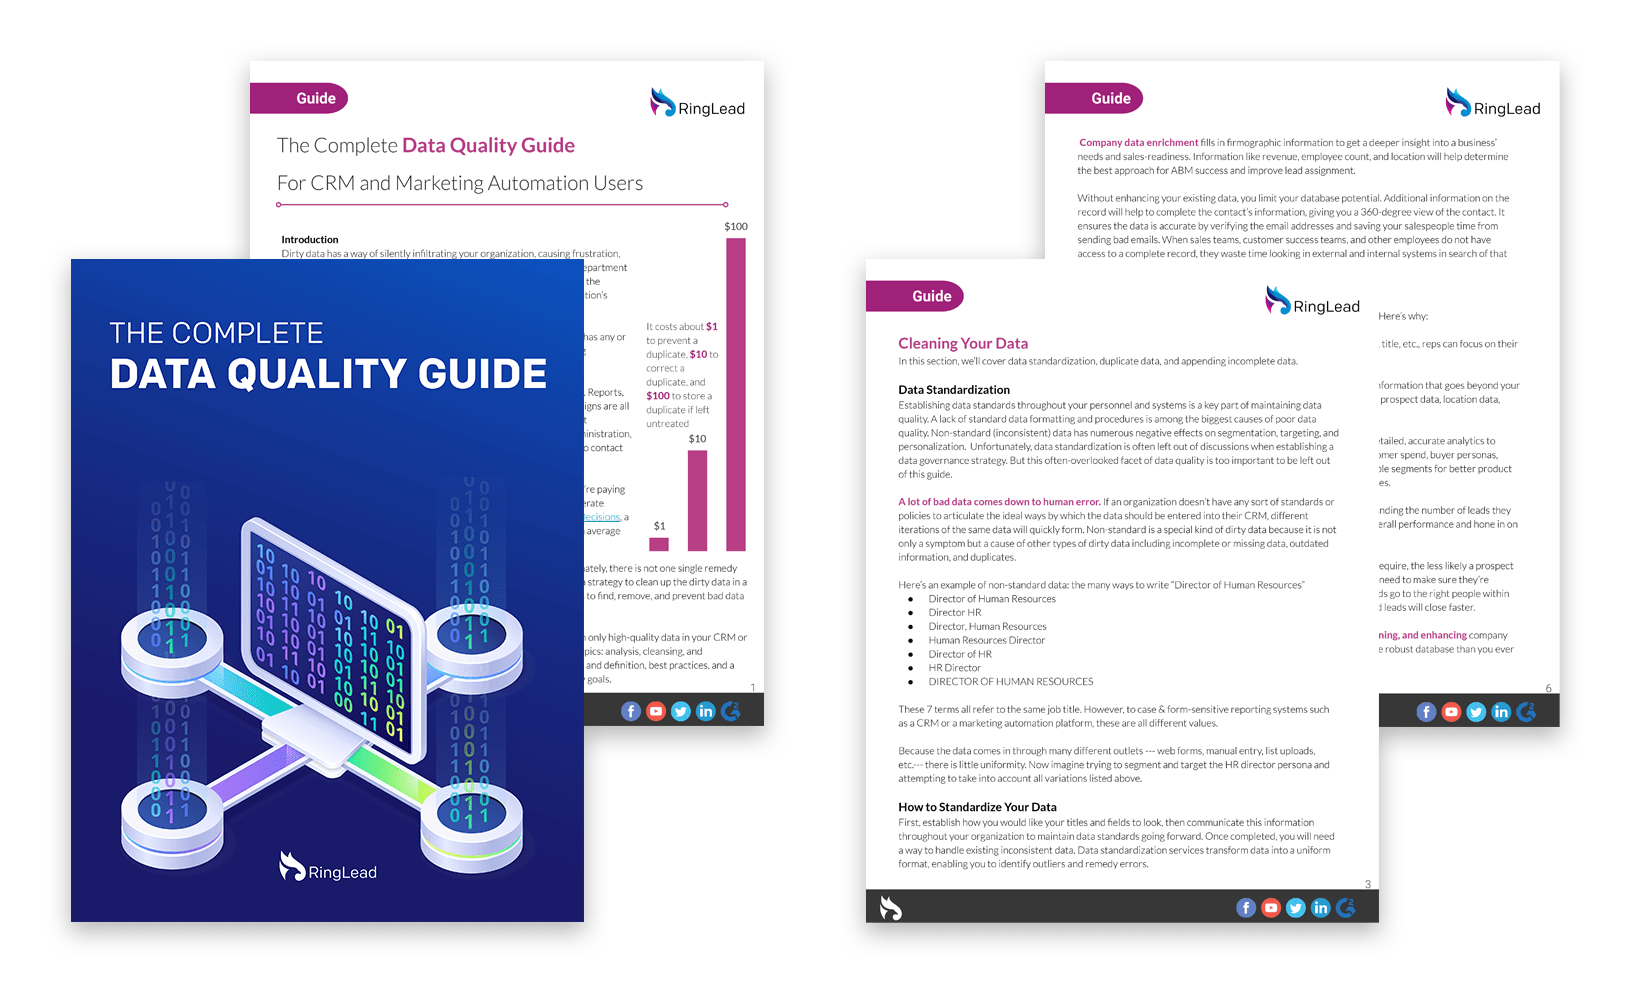 The Complete Data Quality Guide